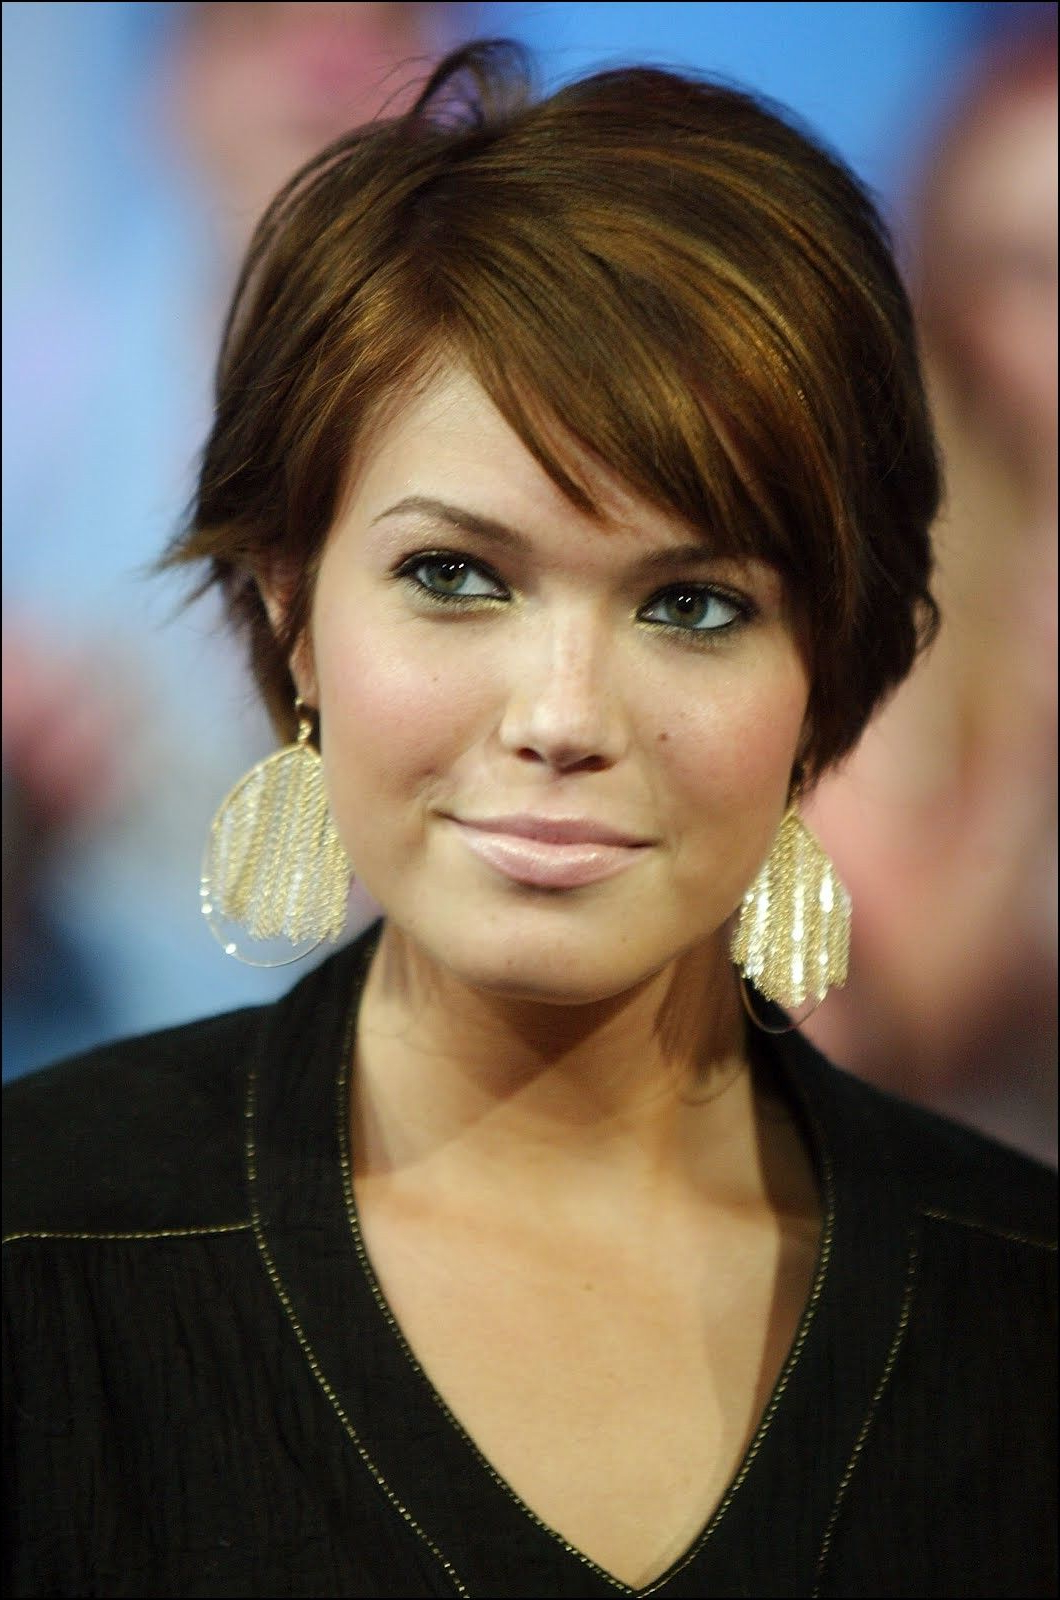 Short Haircuts For Square Face Shape   Hair And Beauty   Pinterest With Regard To Short Hairstyles For Square Faces And Thick Hair (View 14 of 25)